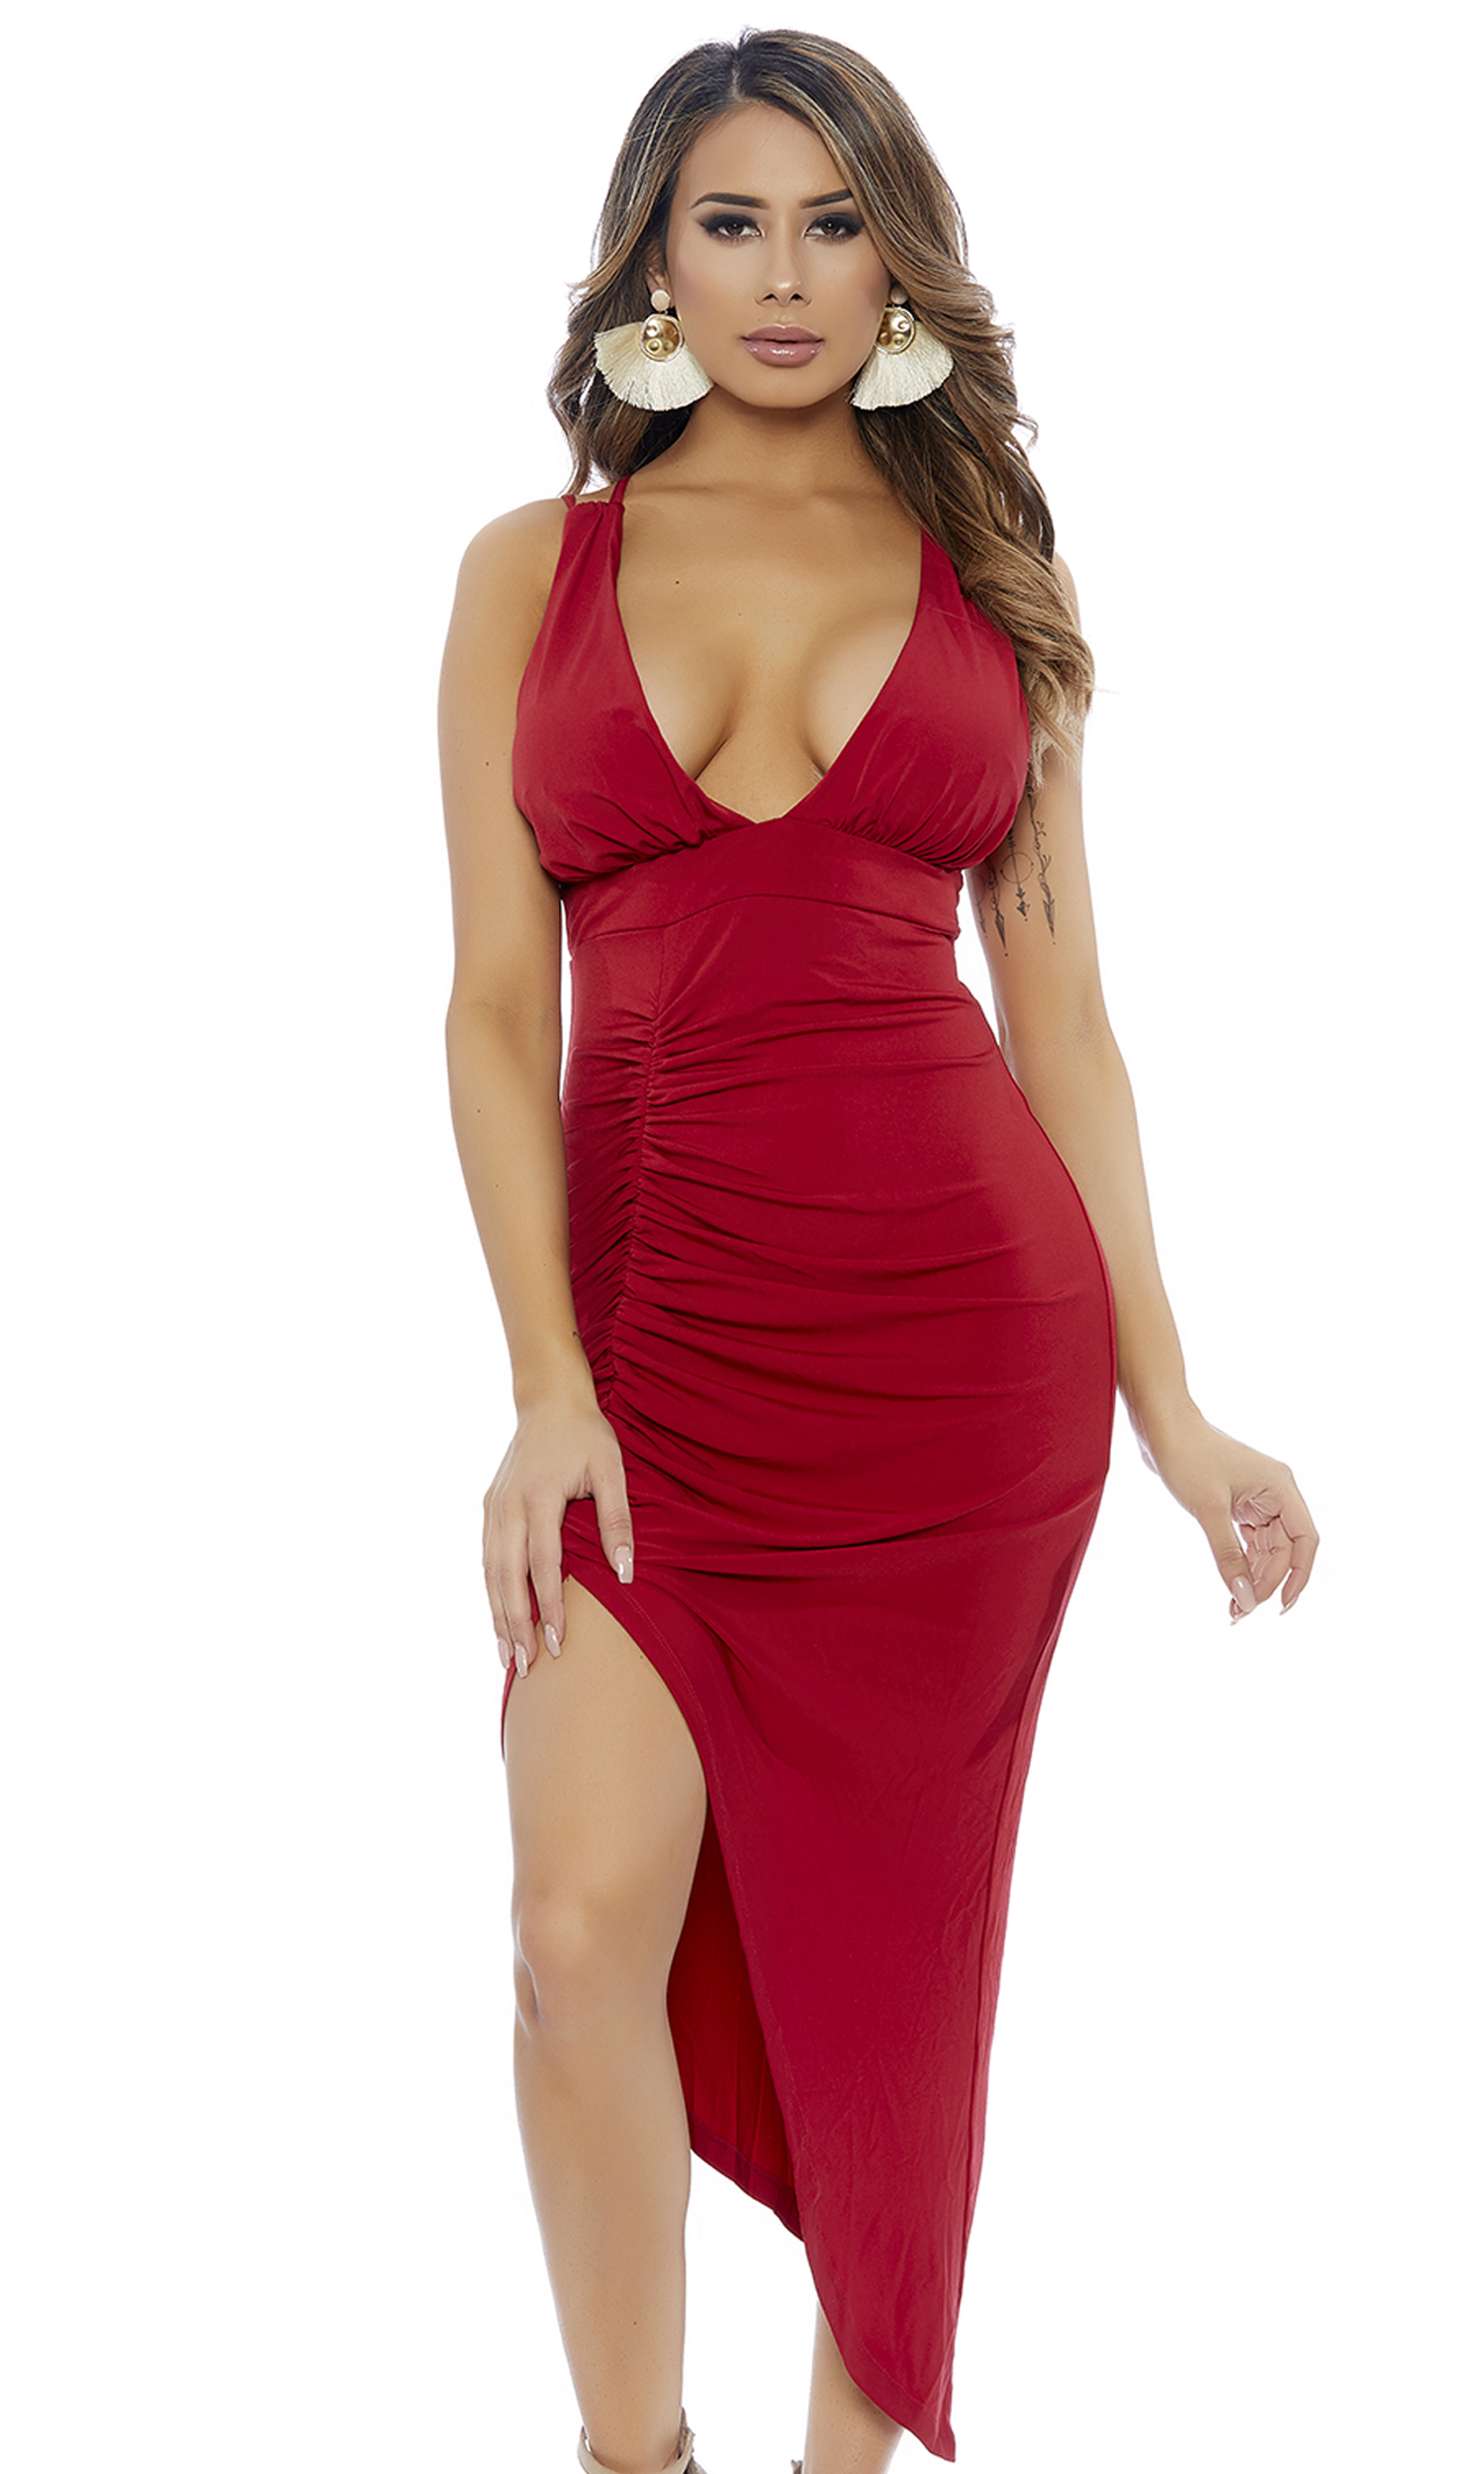 Sexy Dresses - Occasion Dresses - New Dress Styles